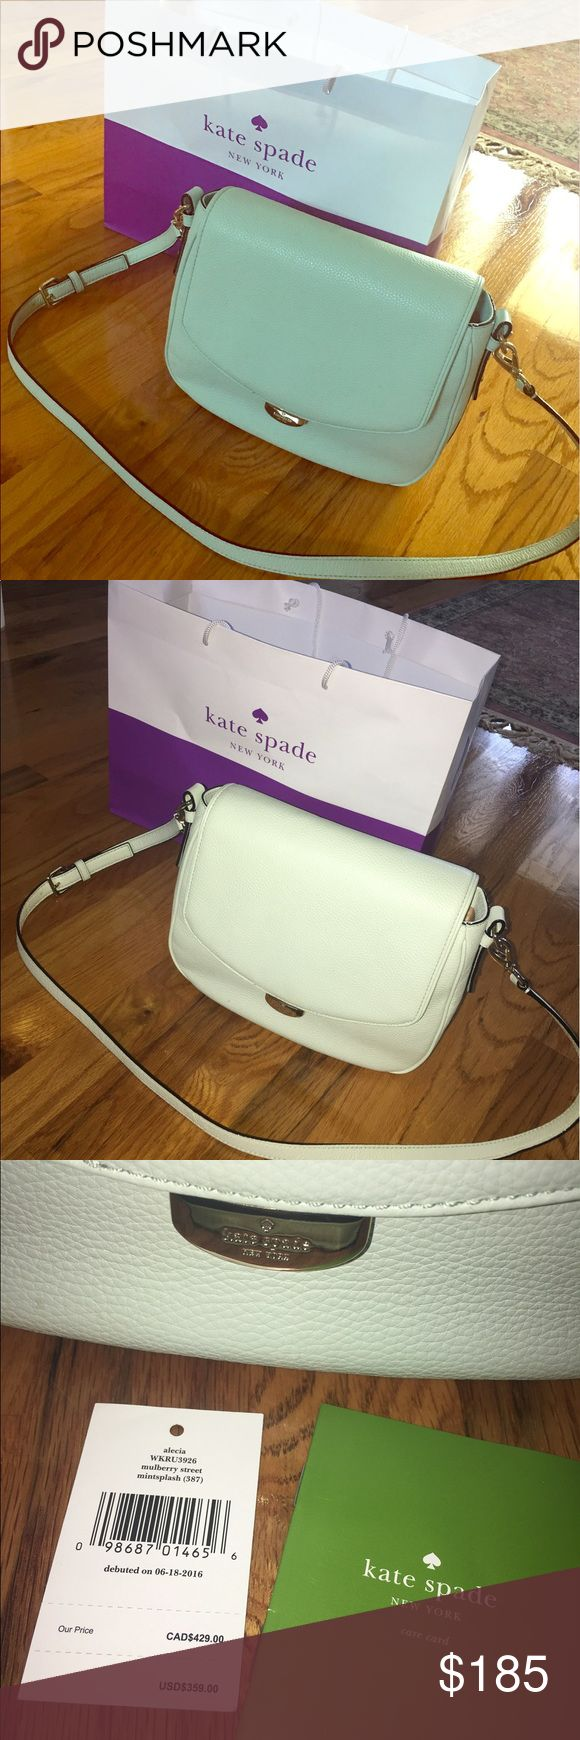 NWT Kate Spade Alecia in mintsplash Brand new with tags Kate Spade Alecia. 11 in wide X 7 in tall X 3 in deep. Mulberry street collection leather. Has handle and adjustable shoulder strap. Beautiful beige interior with zip pocket and two slot pockets. Beautiful purse, I'm just partial to the small rachelle style. REASONABLE offers accepted 😊 kate spade Bags